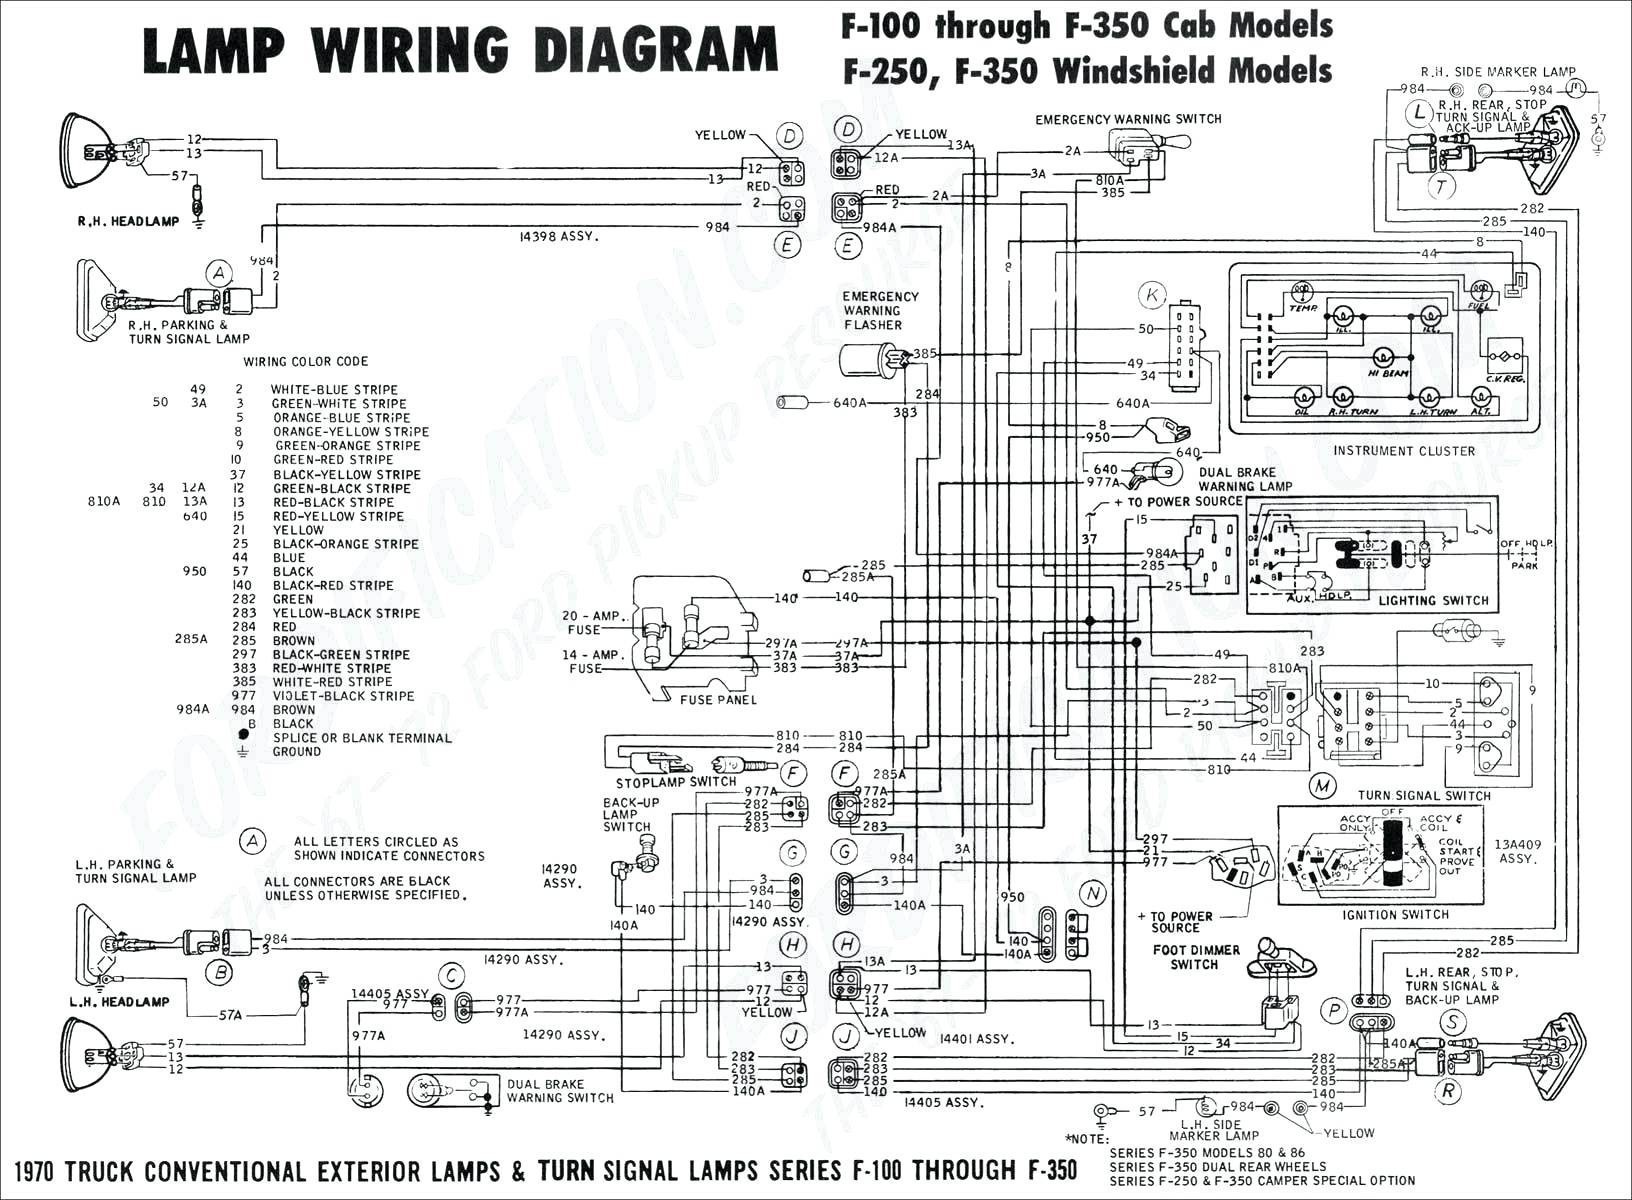 Gmc Truck Parts Diagram 2001 F250 Engine Diagram Experts Wiring Diagram • Of Gmc Truck Parts Diagram